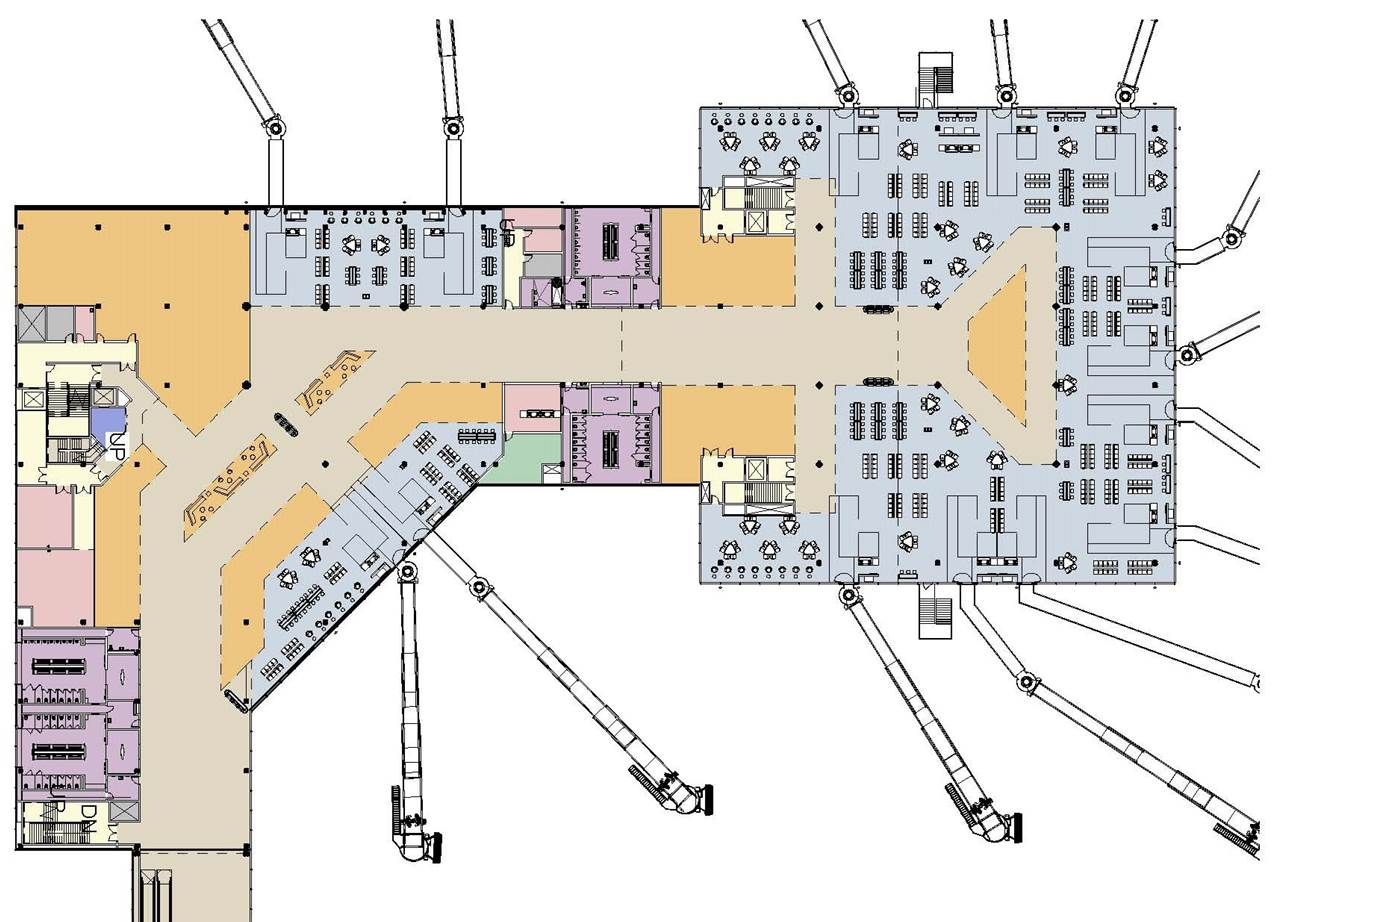 Dca Airport Map on